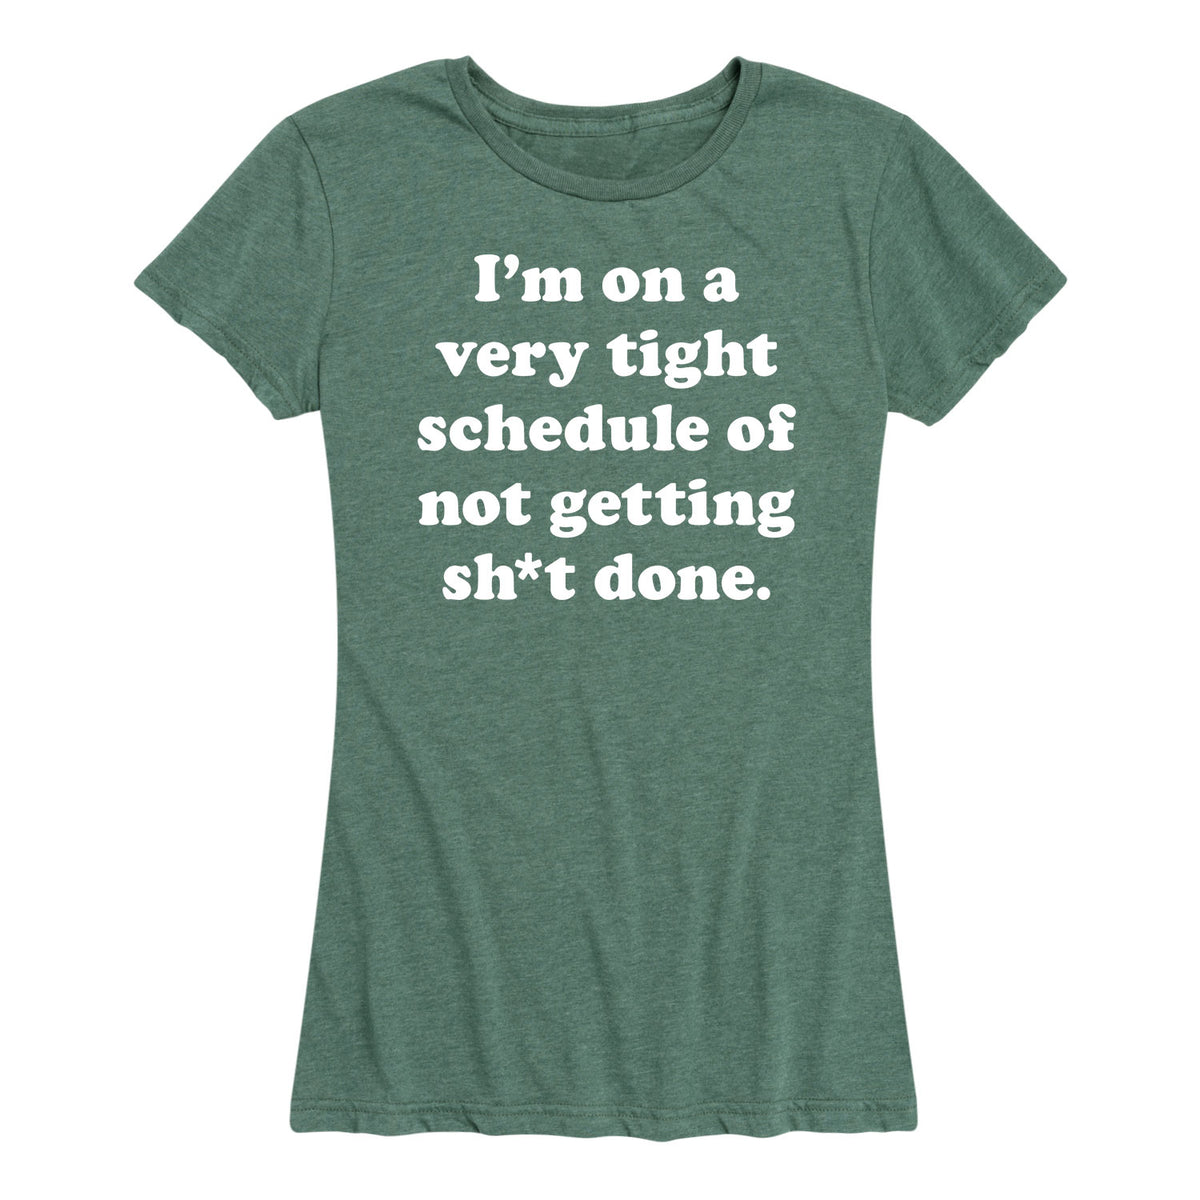 I'm On A Very Tight Schedule - Women's Short Sleeve T-Shirt